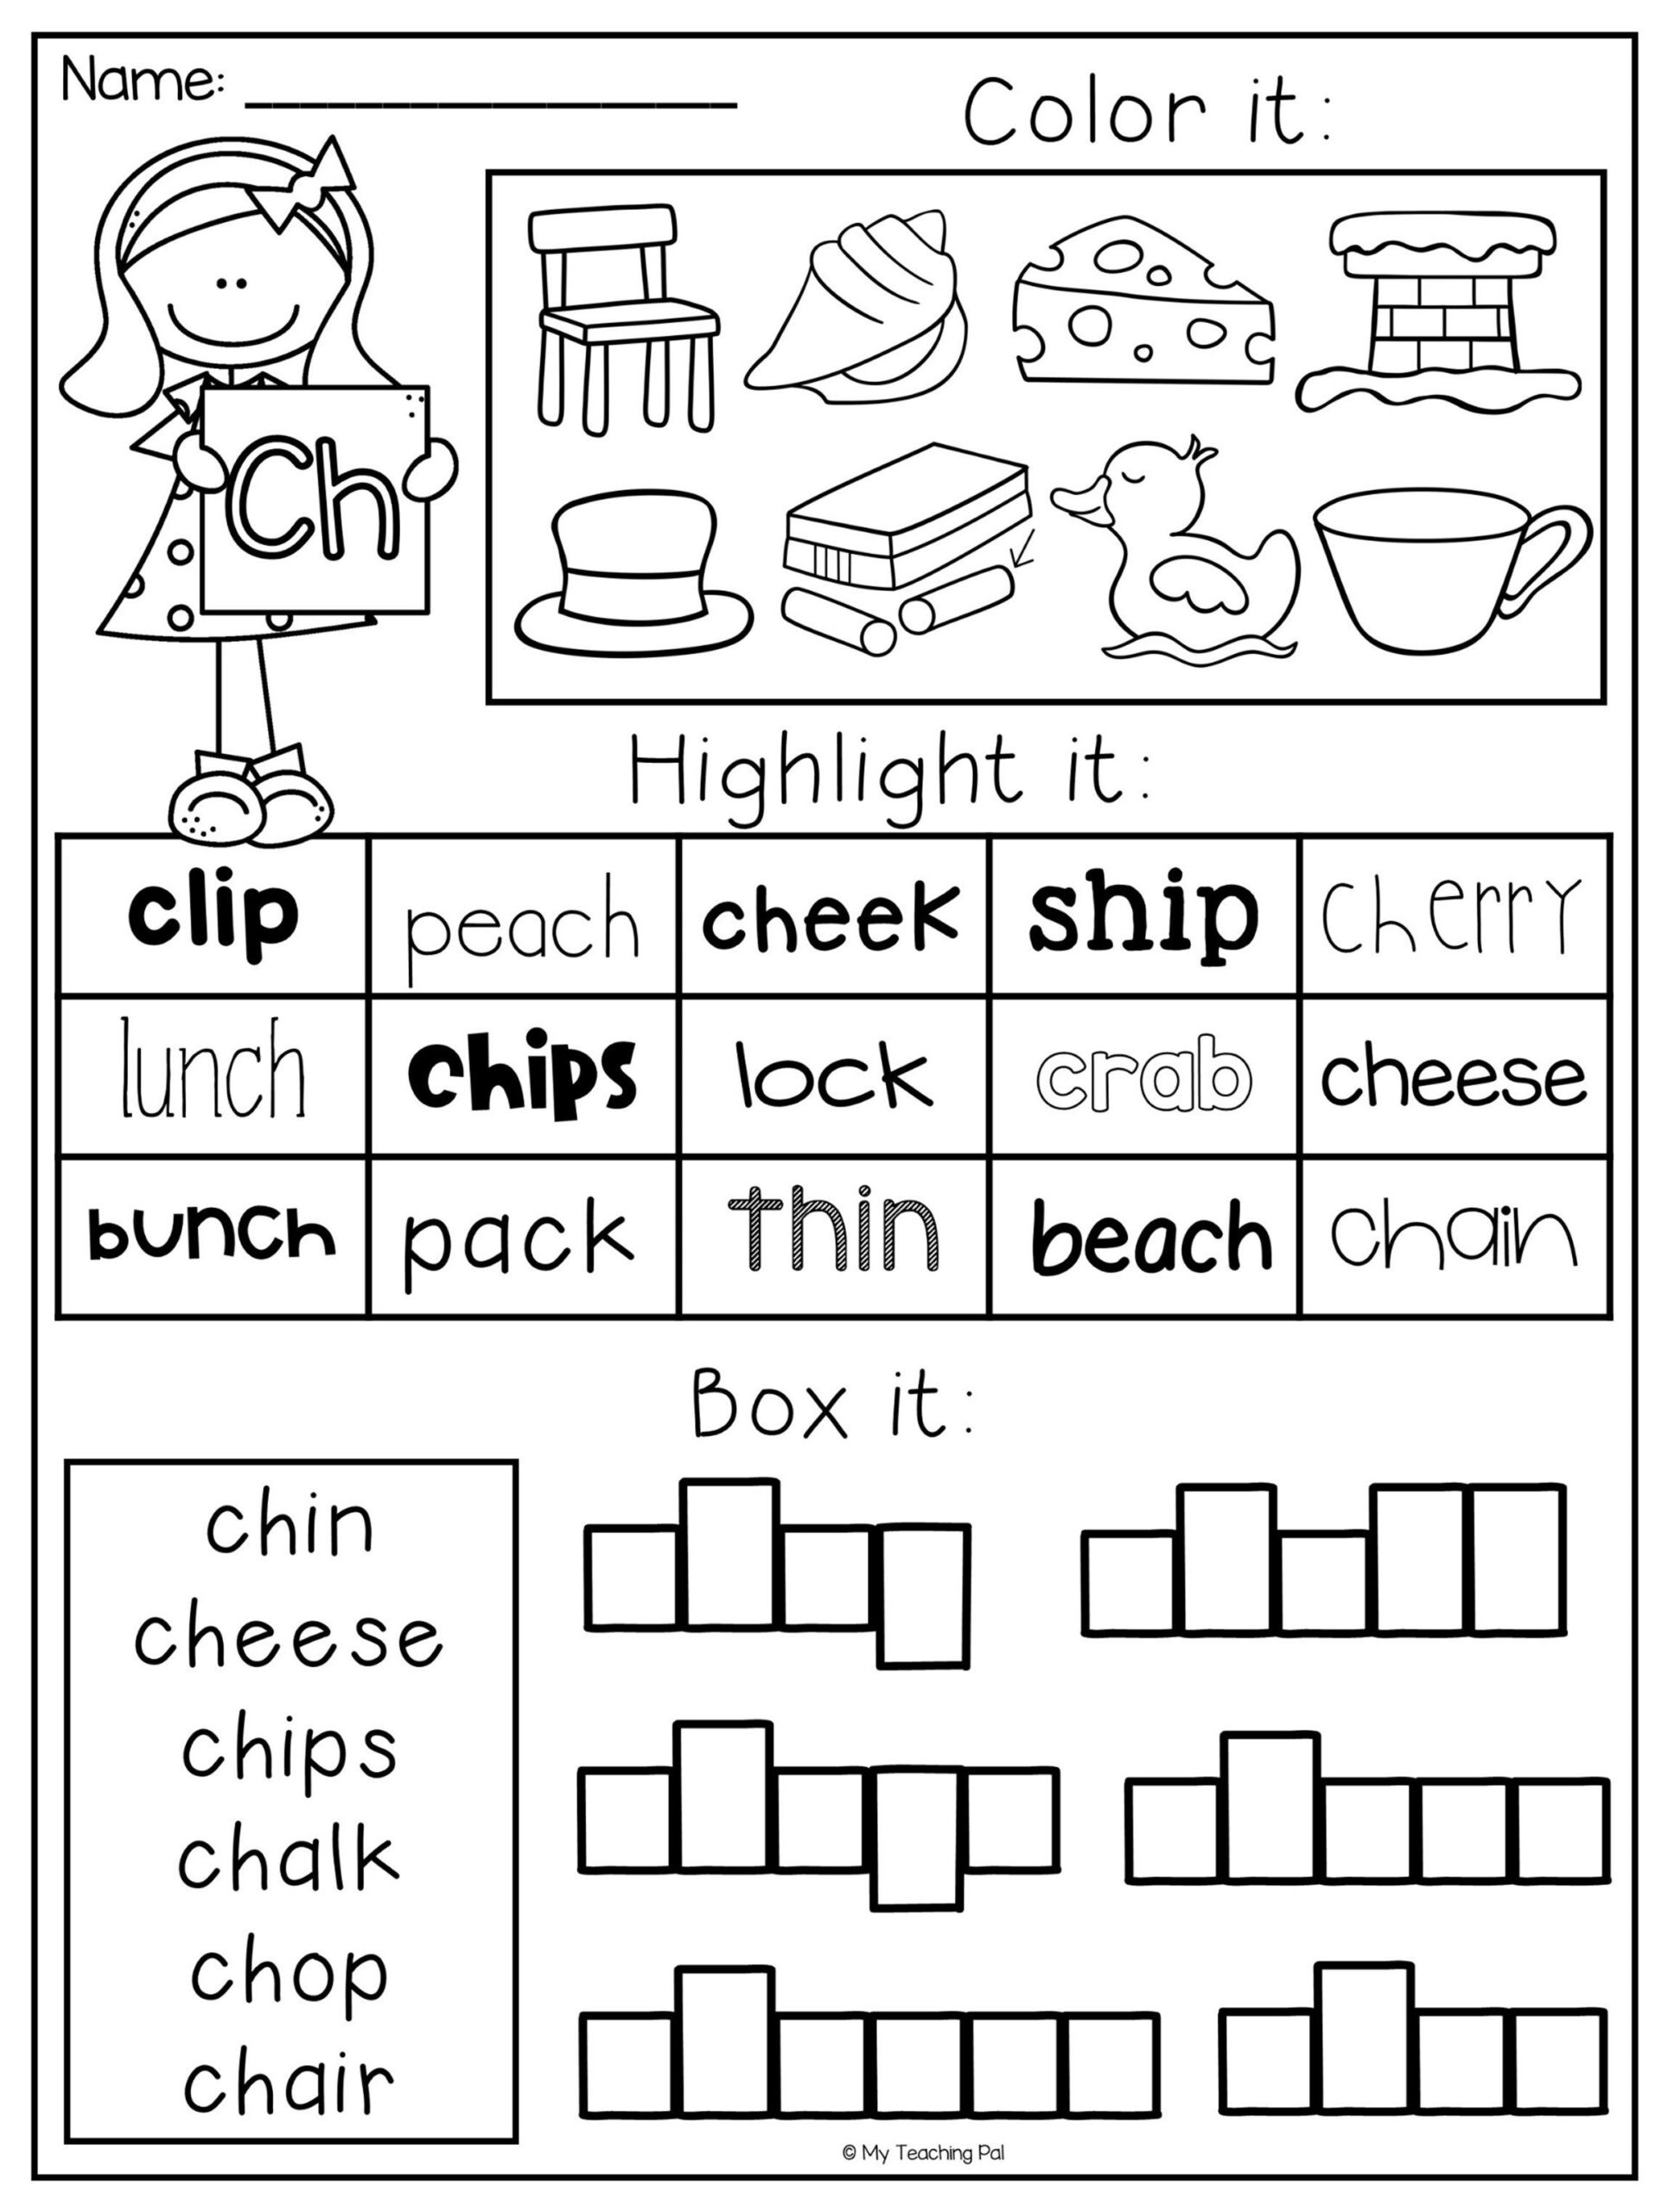 8th Grade Reading Worksheets Digraph Worksheet Packet Ch Th Wh Ph Digraphs Worksheets